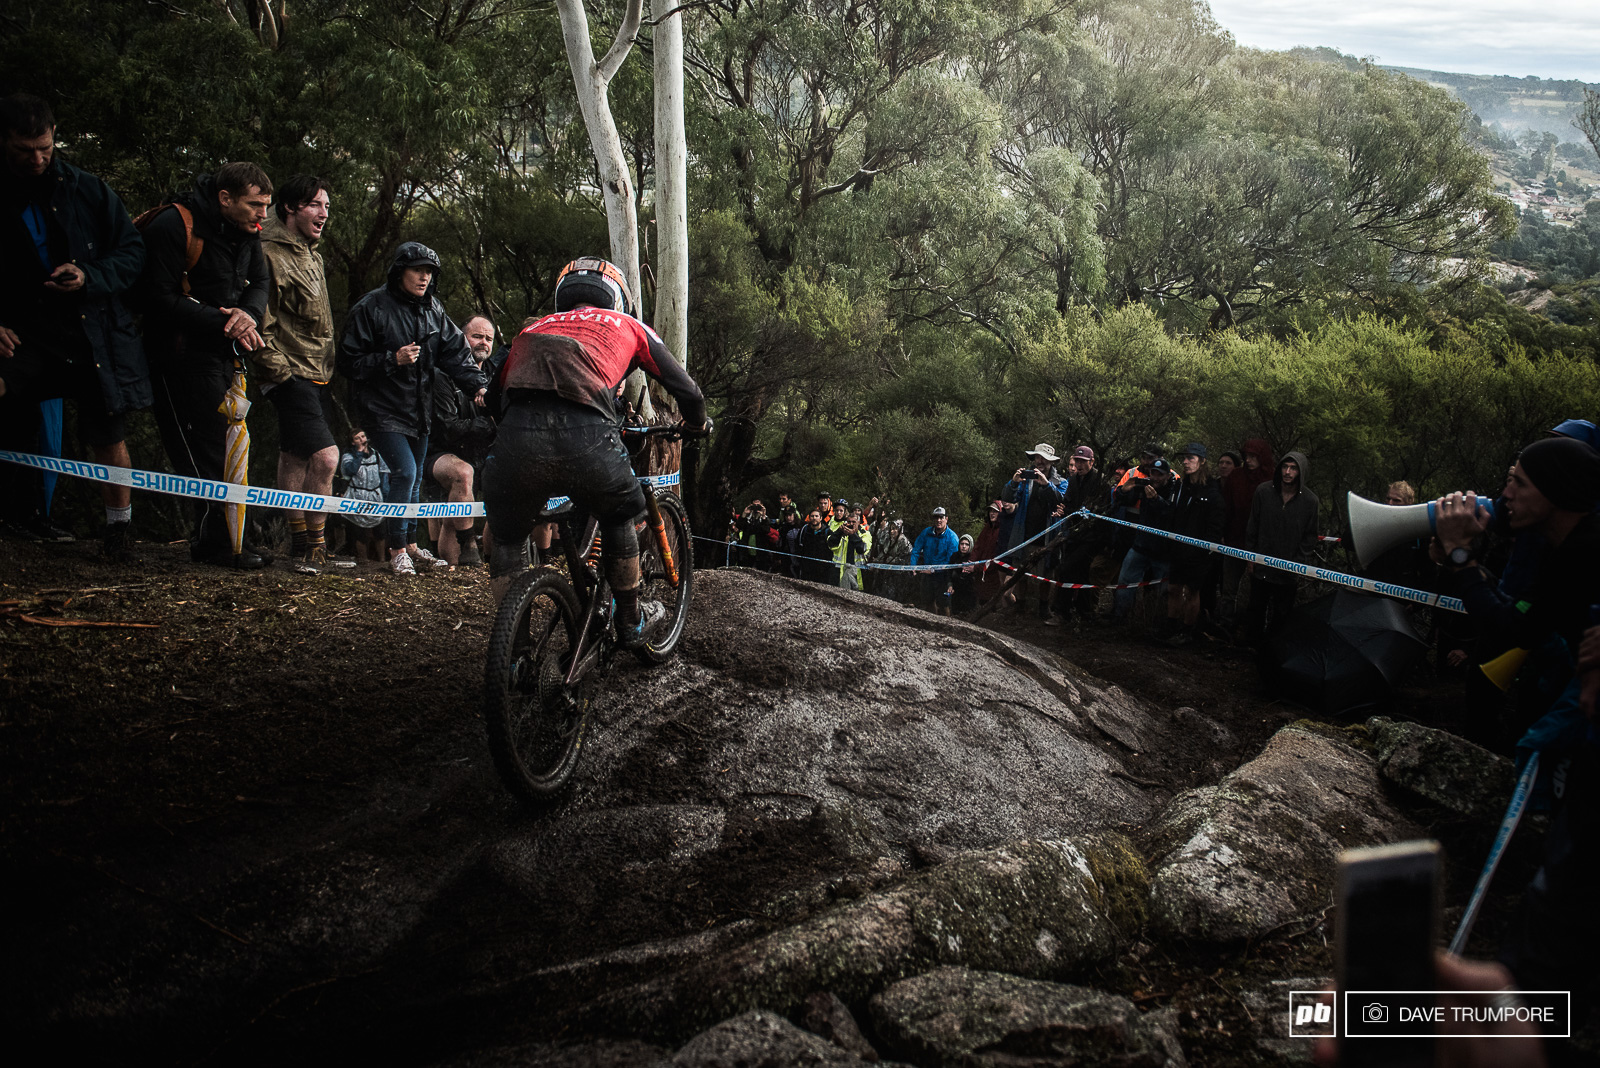 Remi Gauvin drops into the slick woods of stage 6 while the massive crowd looks on.